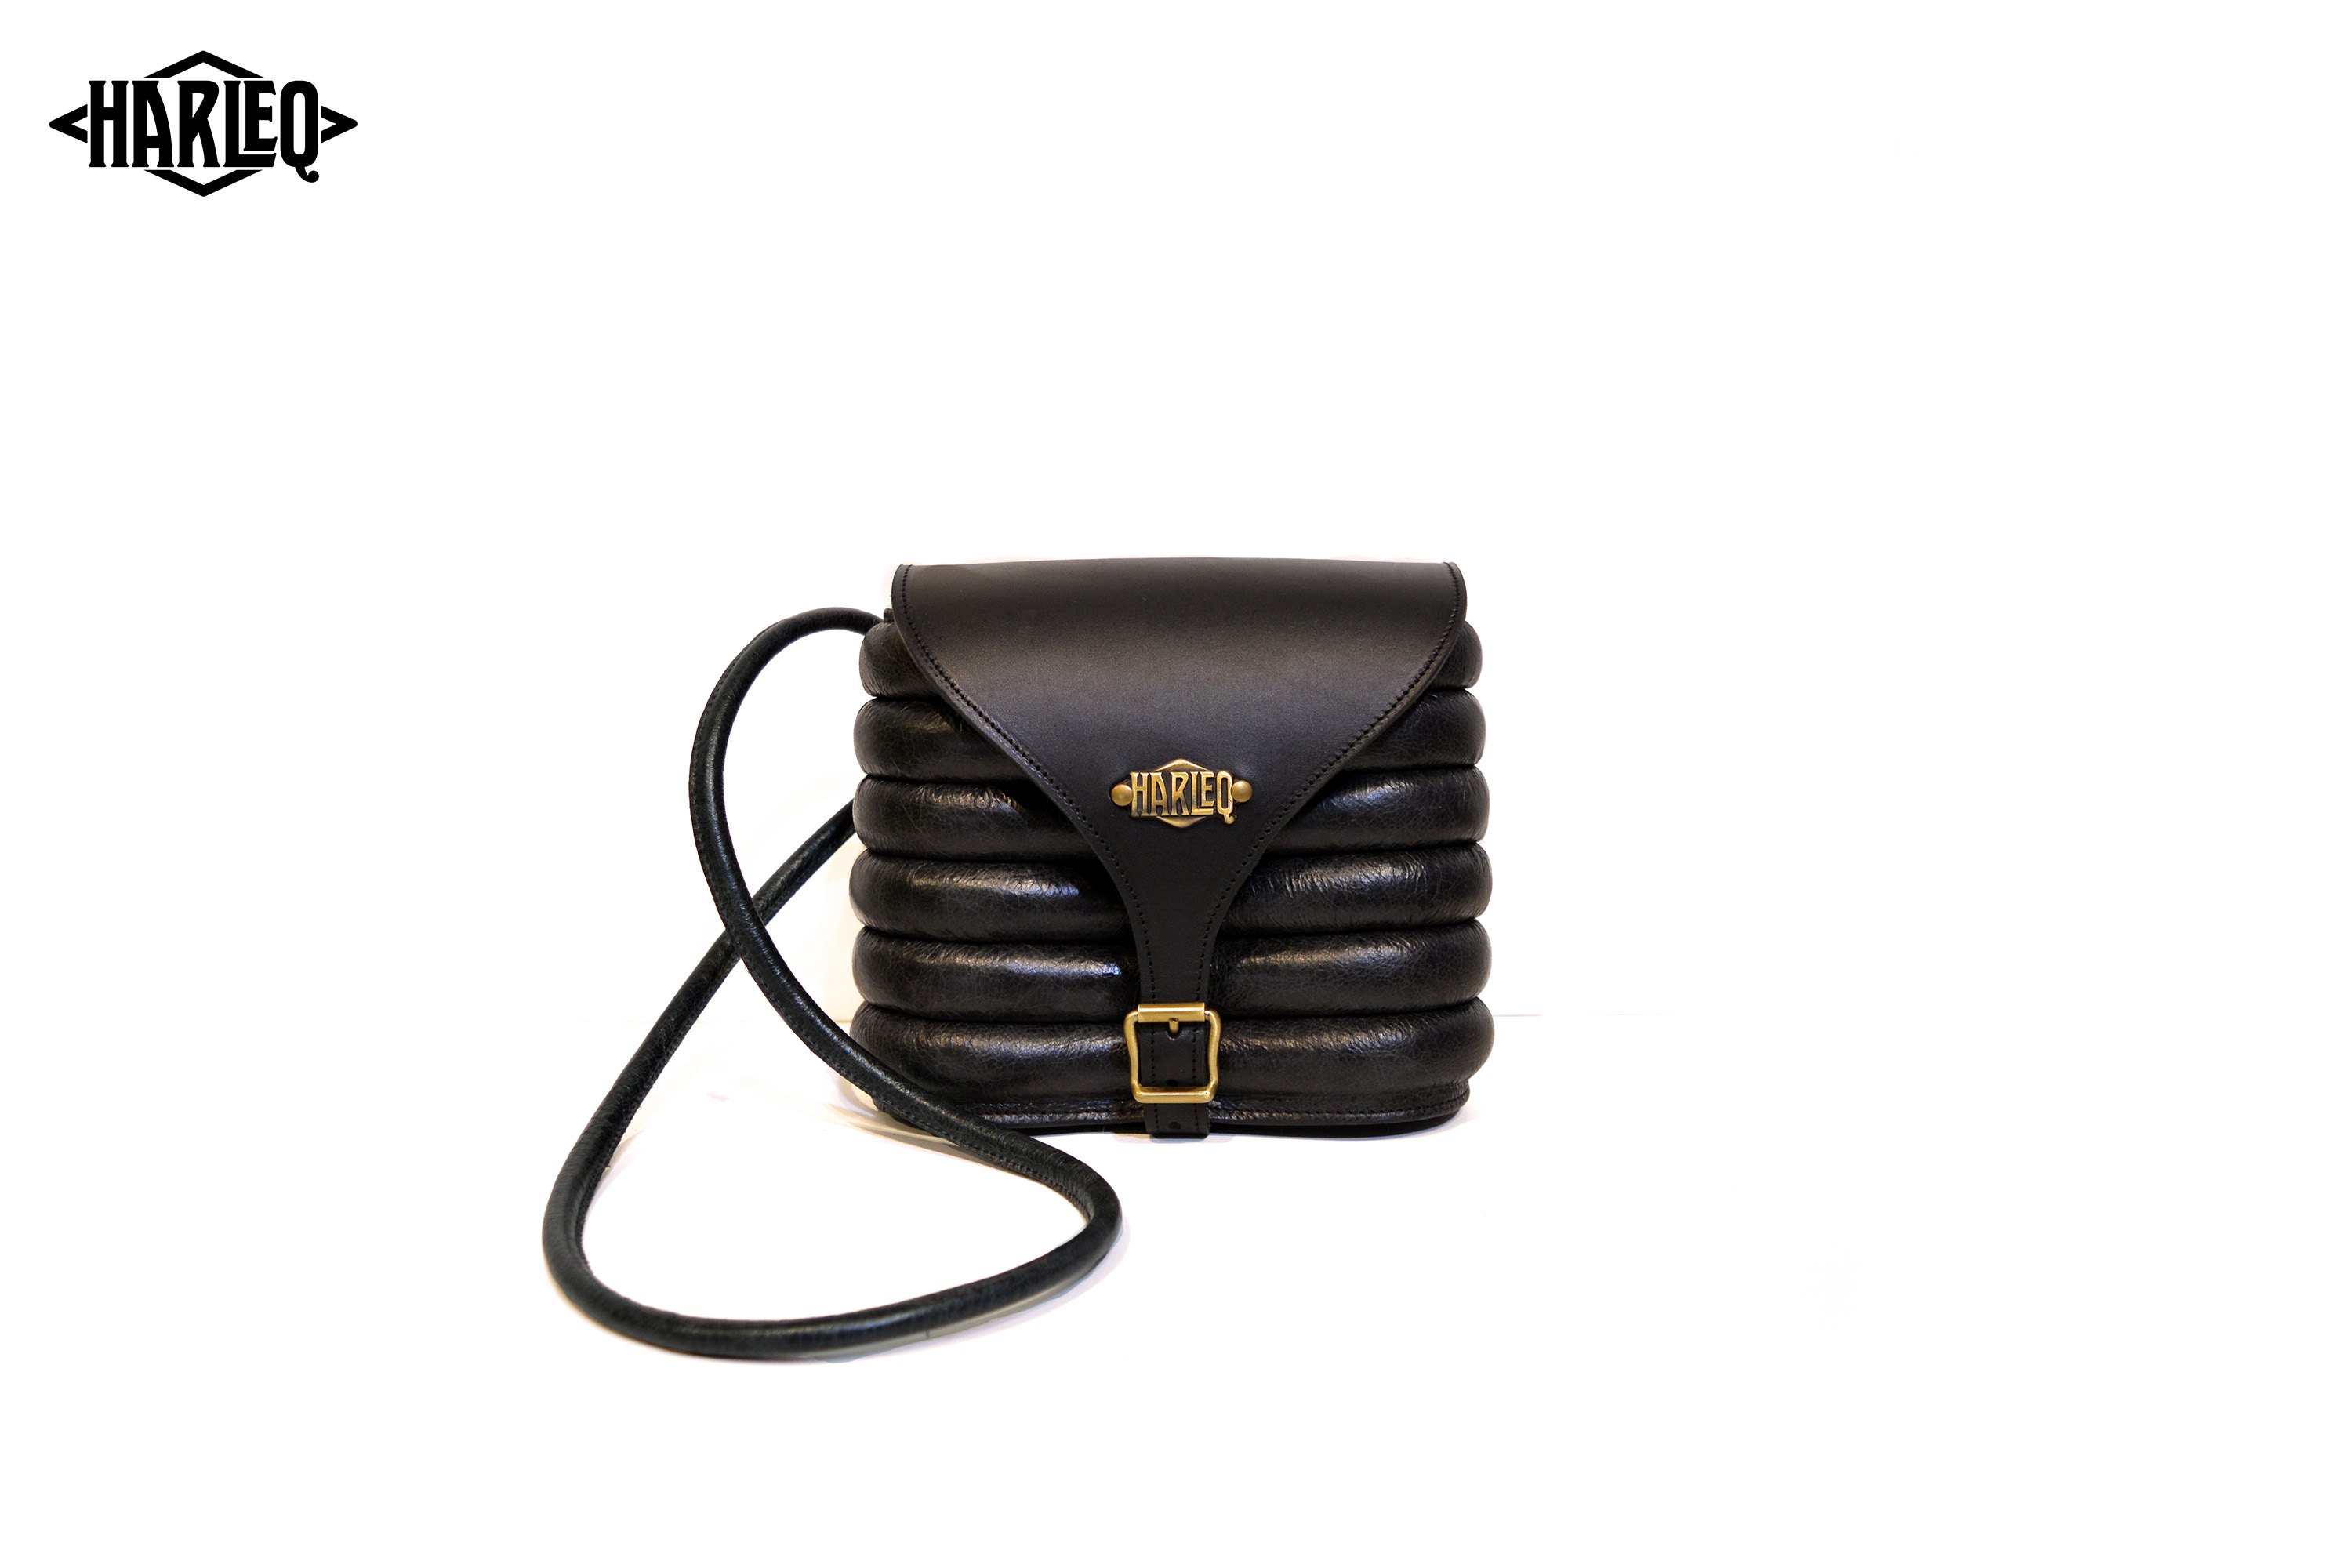 harleq curvy pochette black leather